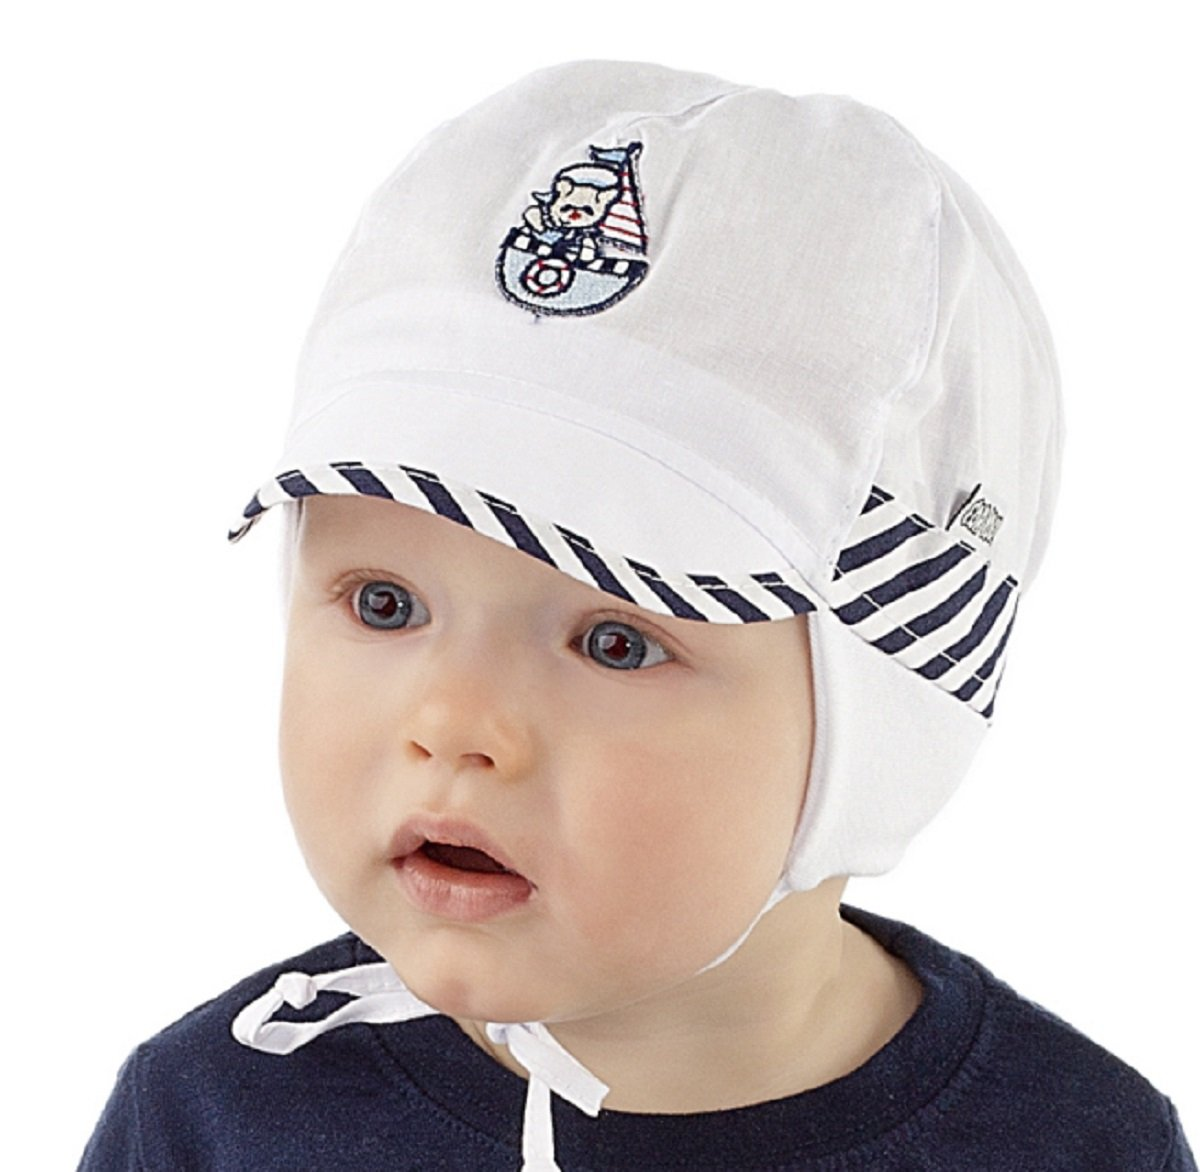 cc4b3bc8 Boys Sun Hat Holiday Beach Summer Hat 0 2 3 6 9 12 months Marine Collection Baby  Boy (46cm 9-12 mths): Amazon.co.uk: Baby